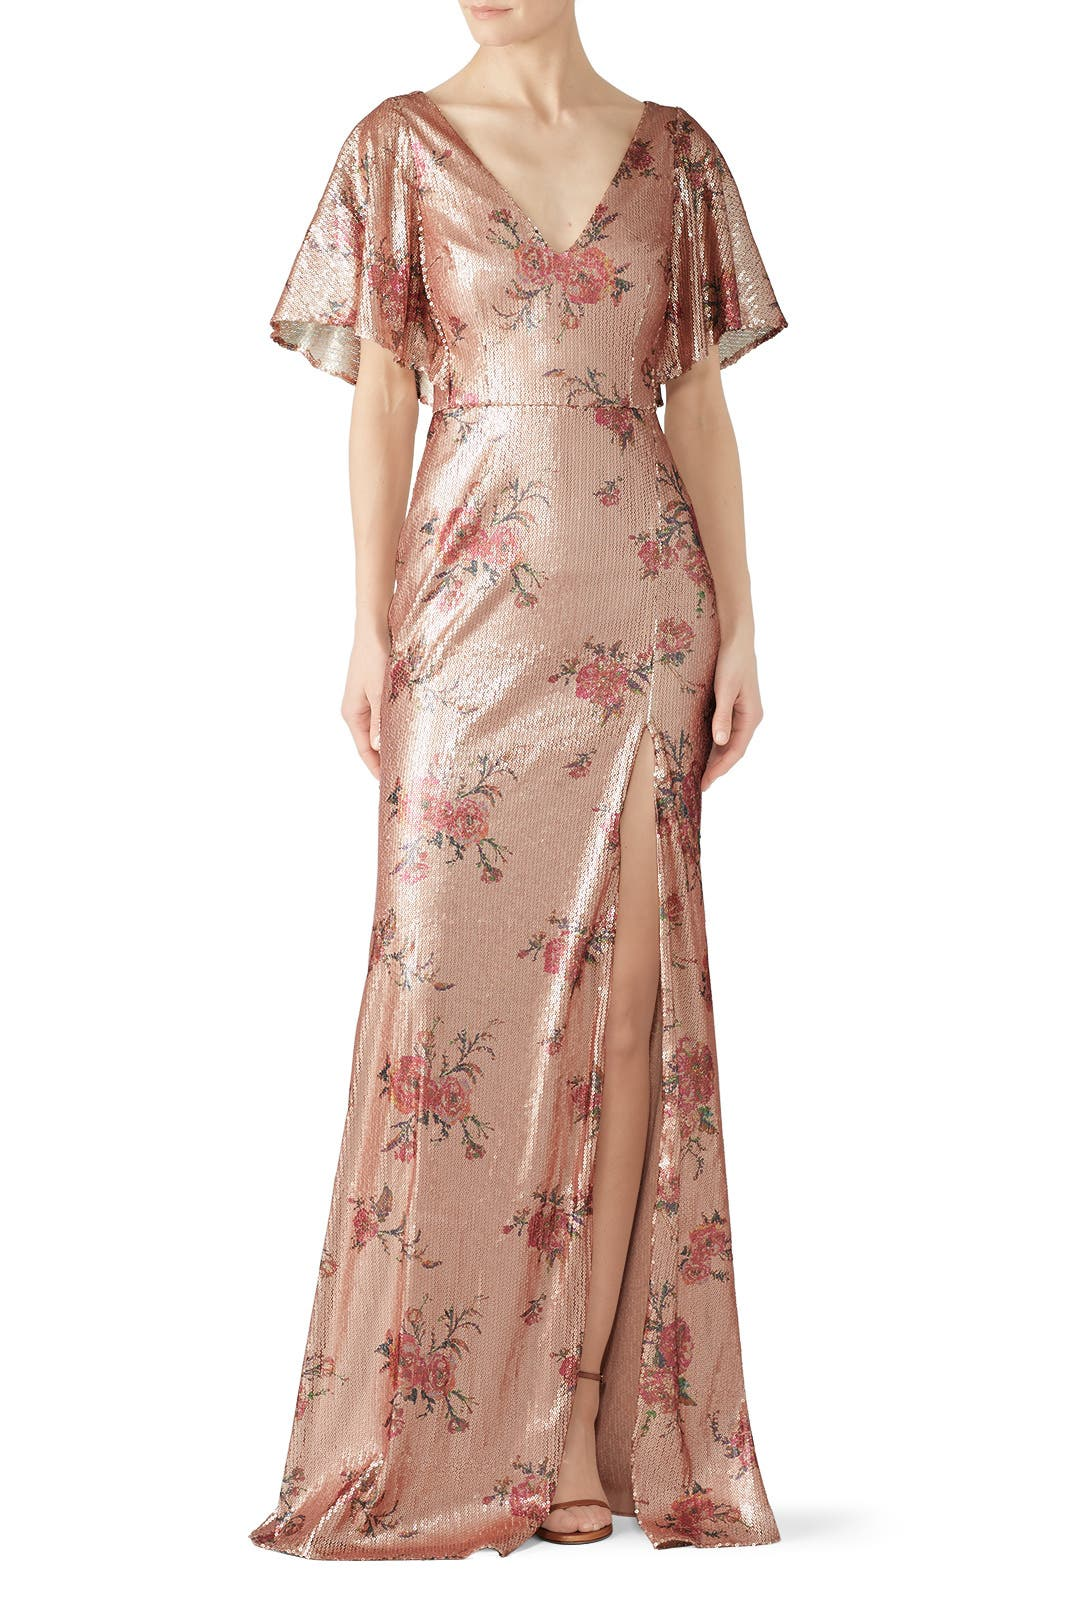 02ec102859fa0 Blush Floral Sequin Gown by Marchesa Notte for $60 | Rent the Runway